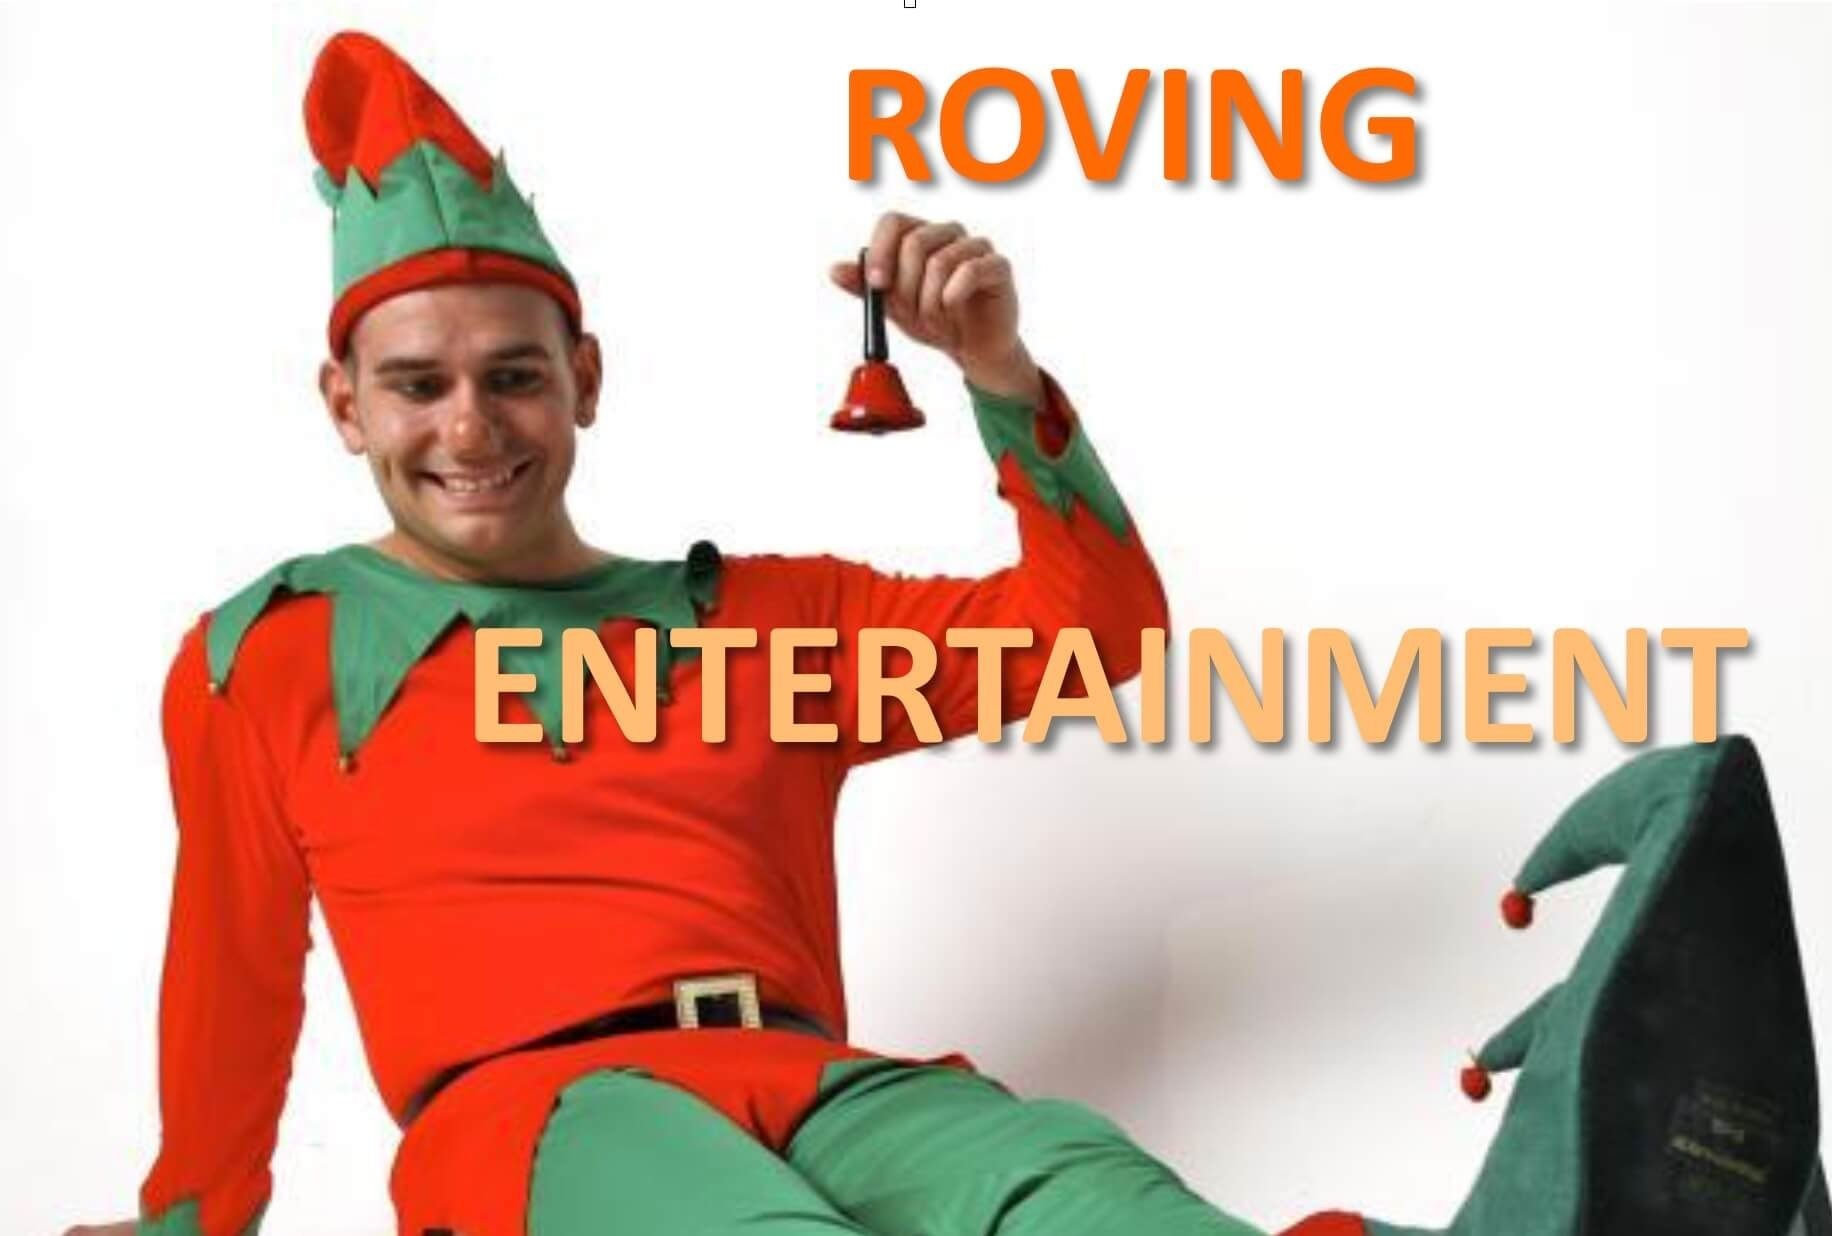 10 Stylish Corporate Christmas Party Entertainment Ideas christmas party entertainment for work staff office parties 1 2020